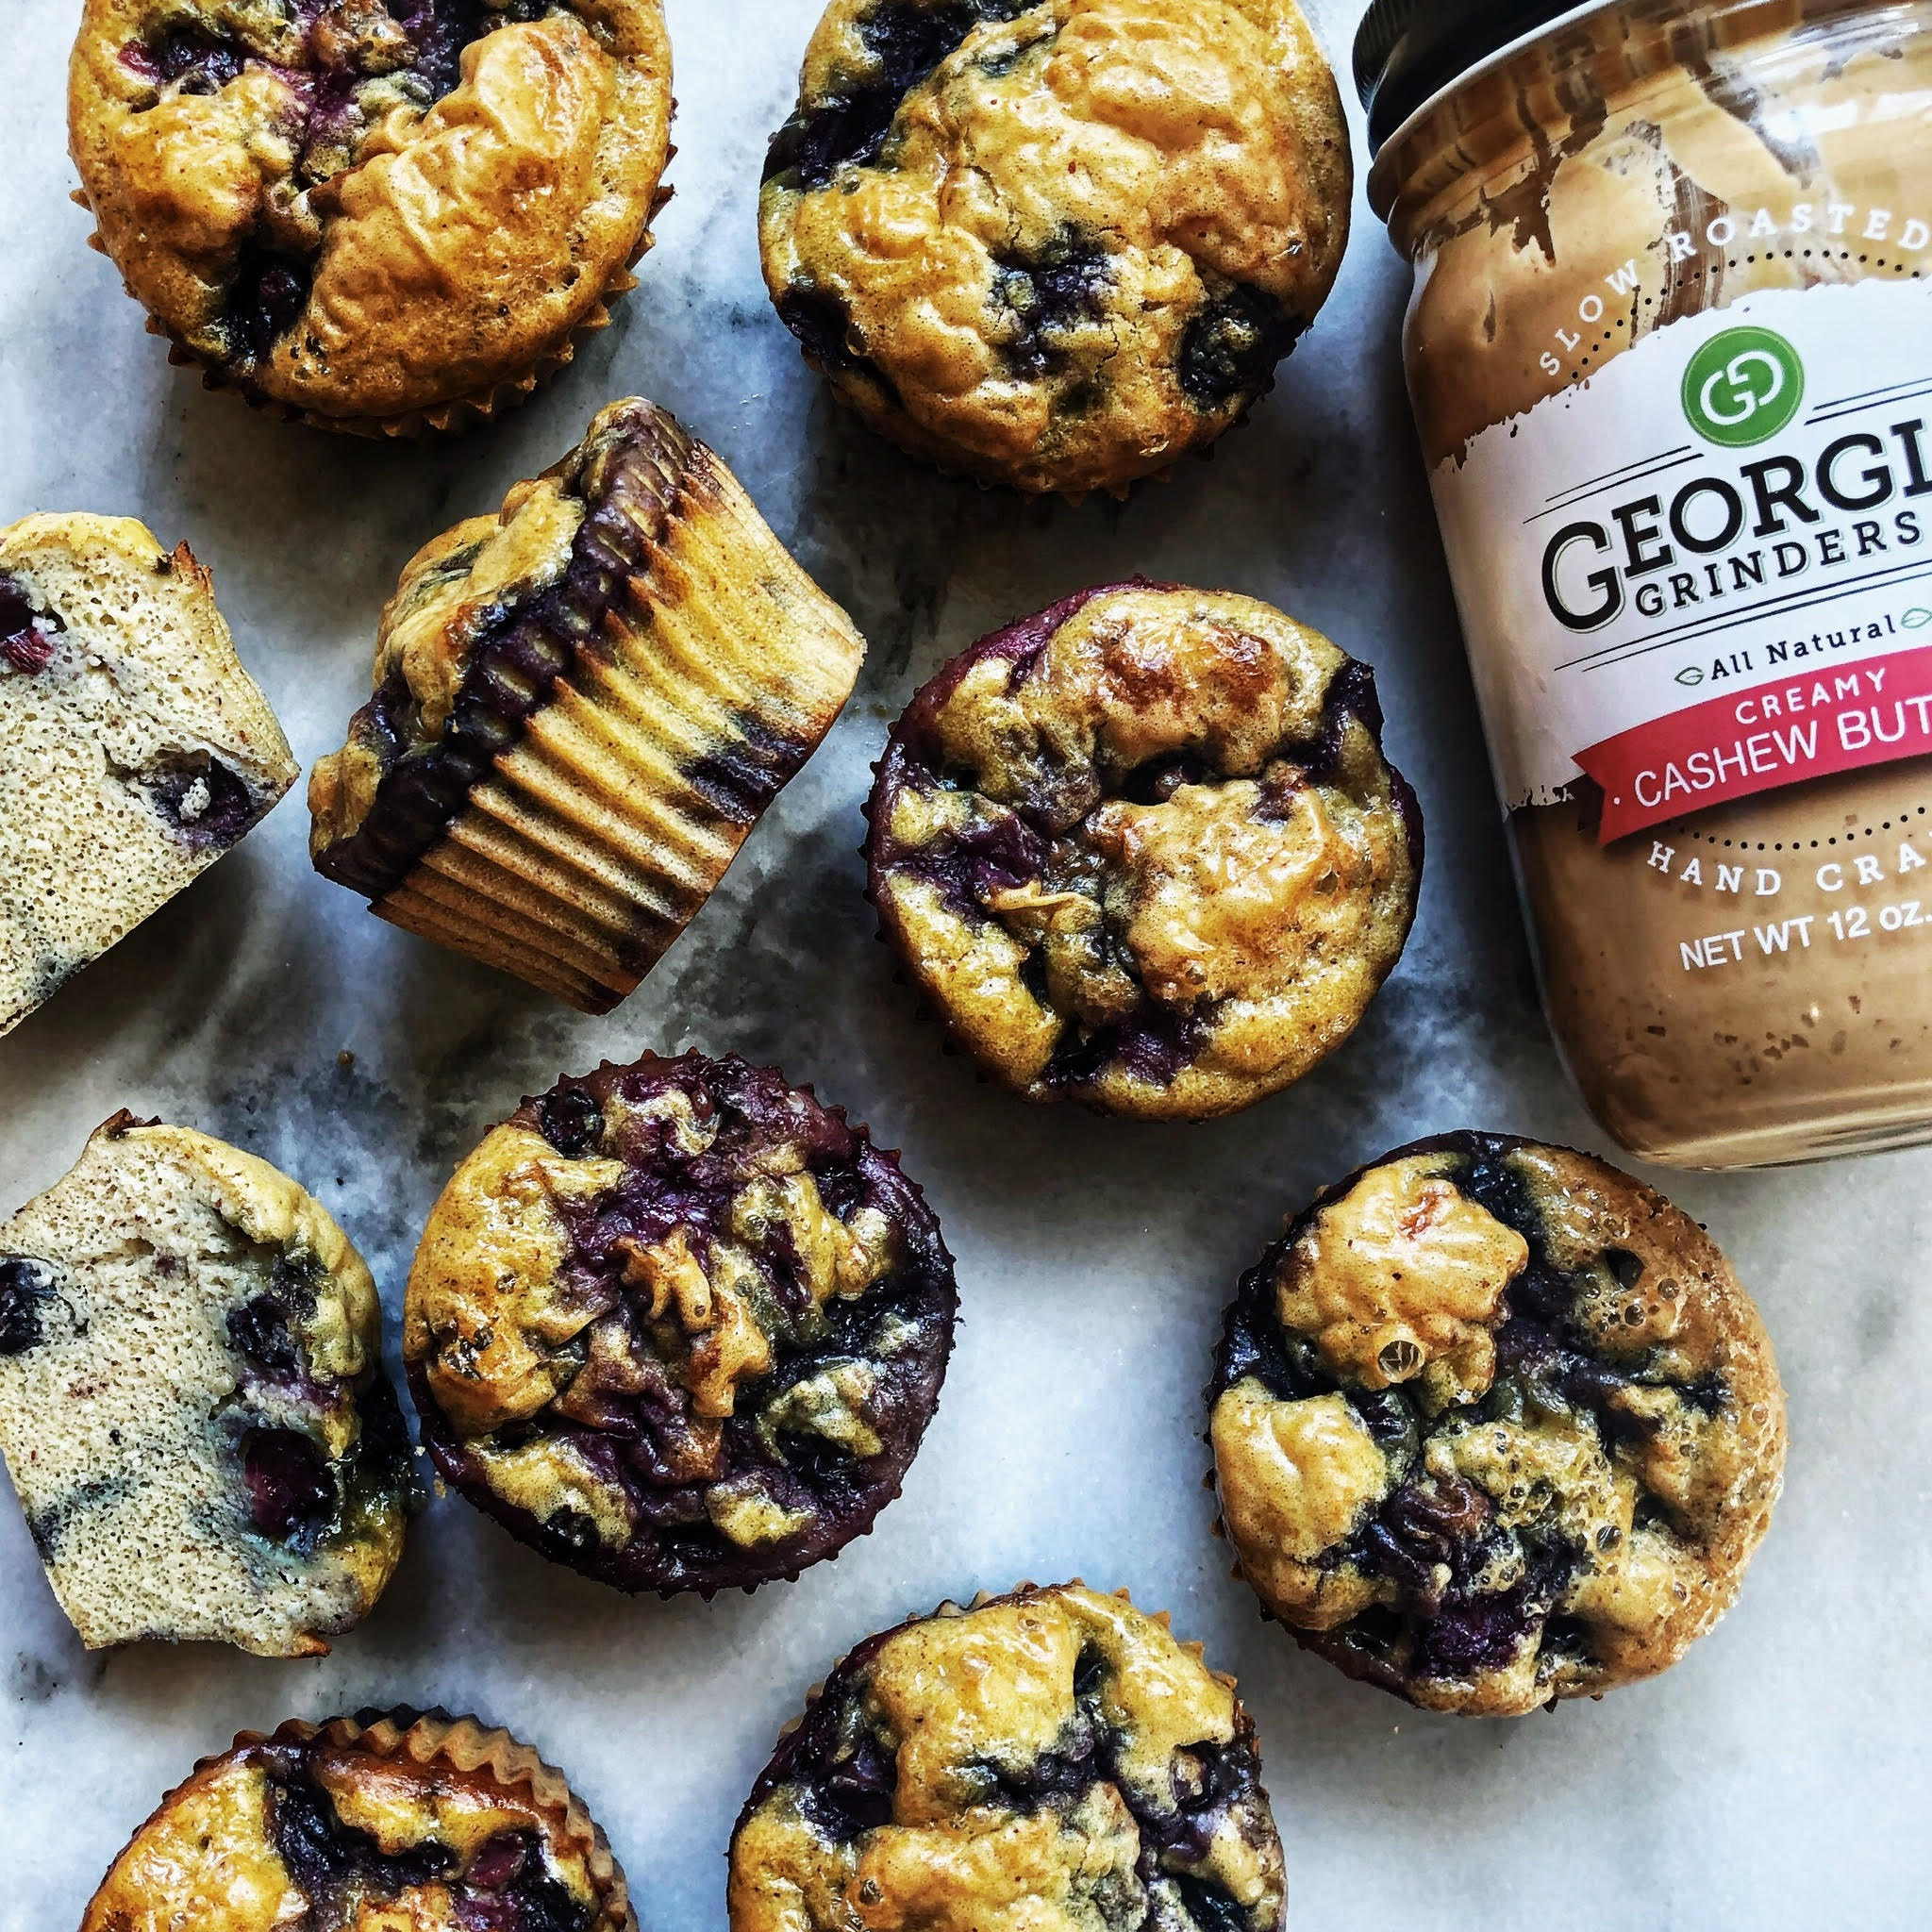 Gluten and Dairy Free Cashew Butter Blueberry Muffins